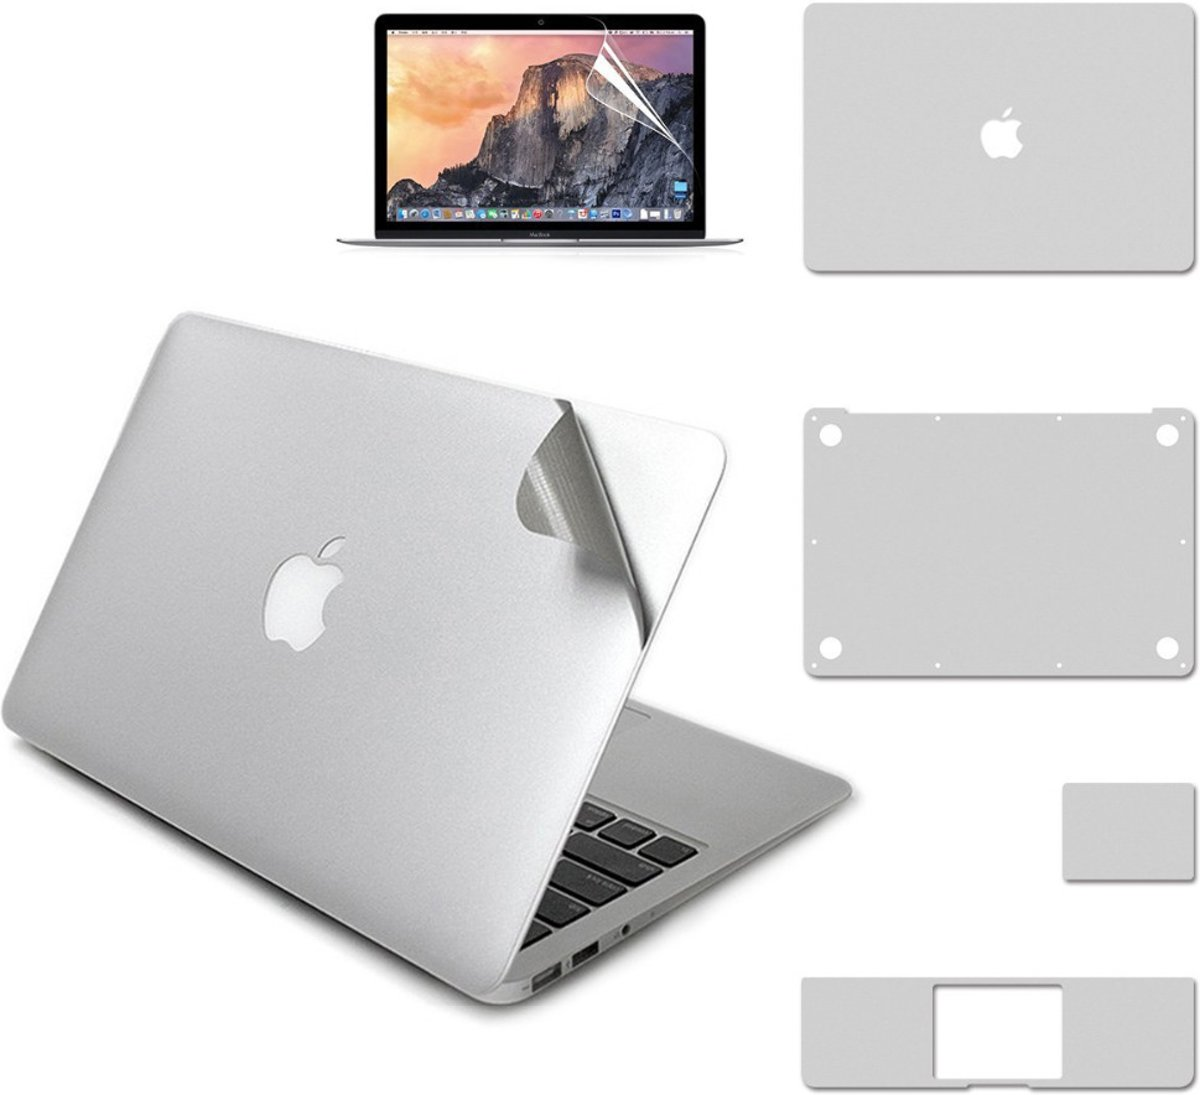 5-in-1 Nano Body Guard Anti Scratch 3M Protector voor Apple MacBook 12 inch Retina - Zilver